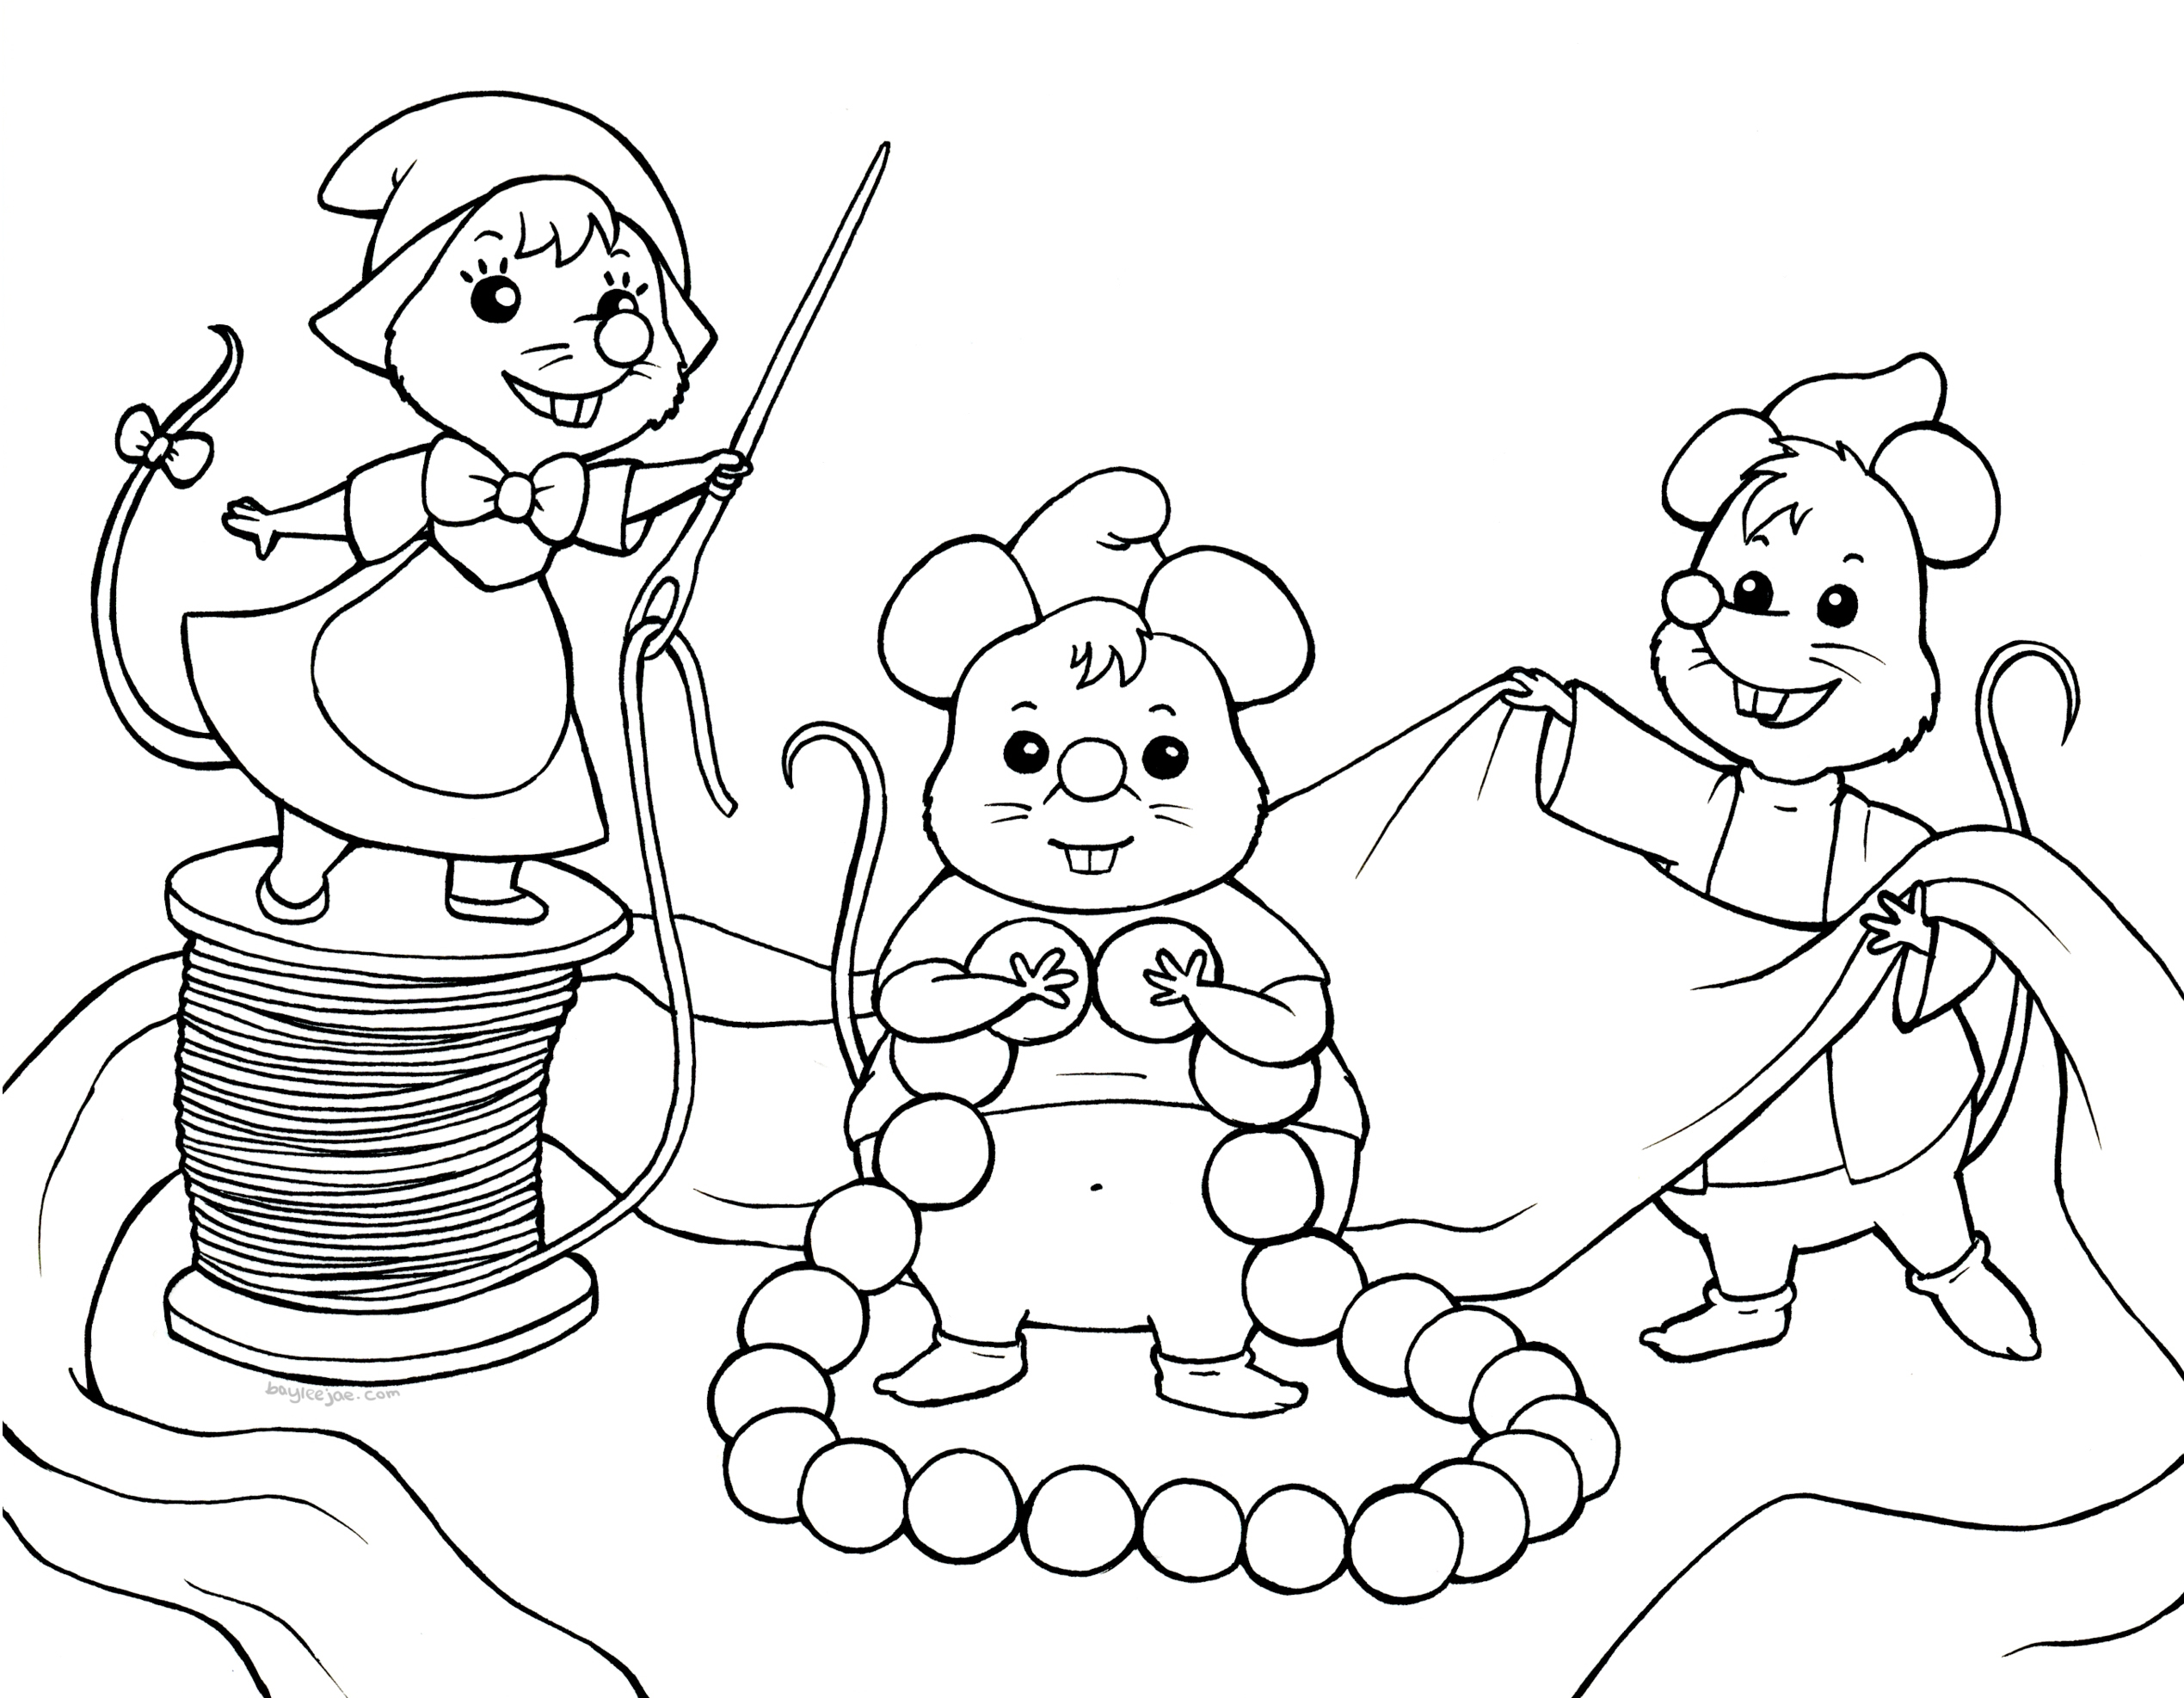 bayleejae | Colouring Pages